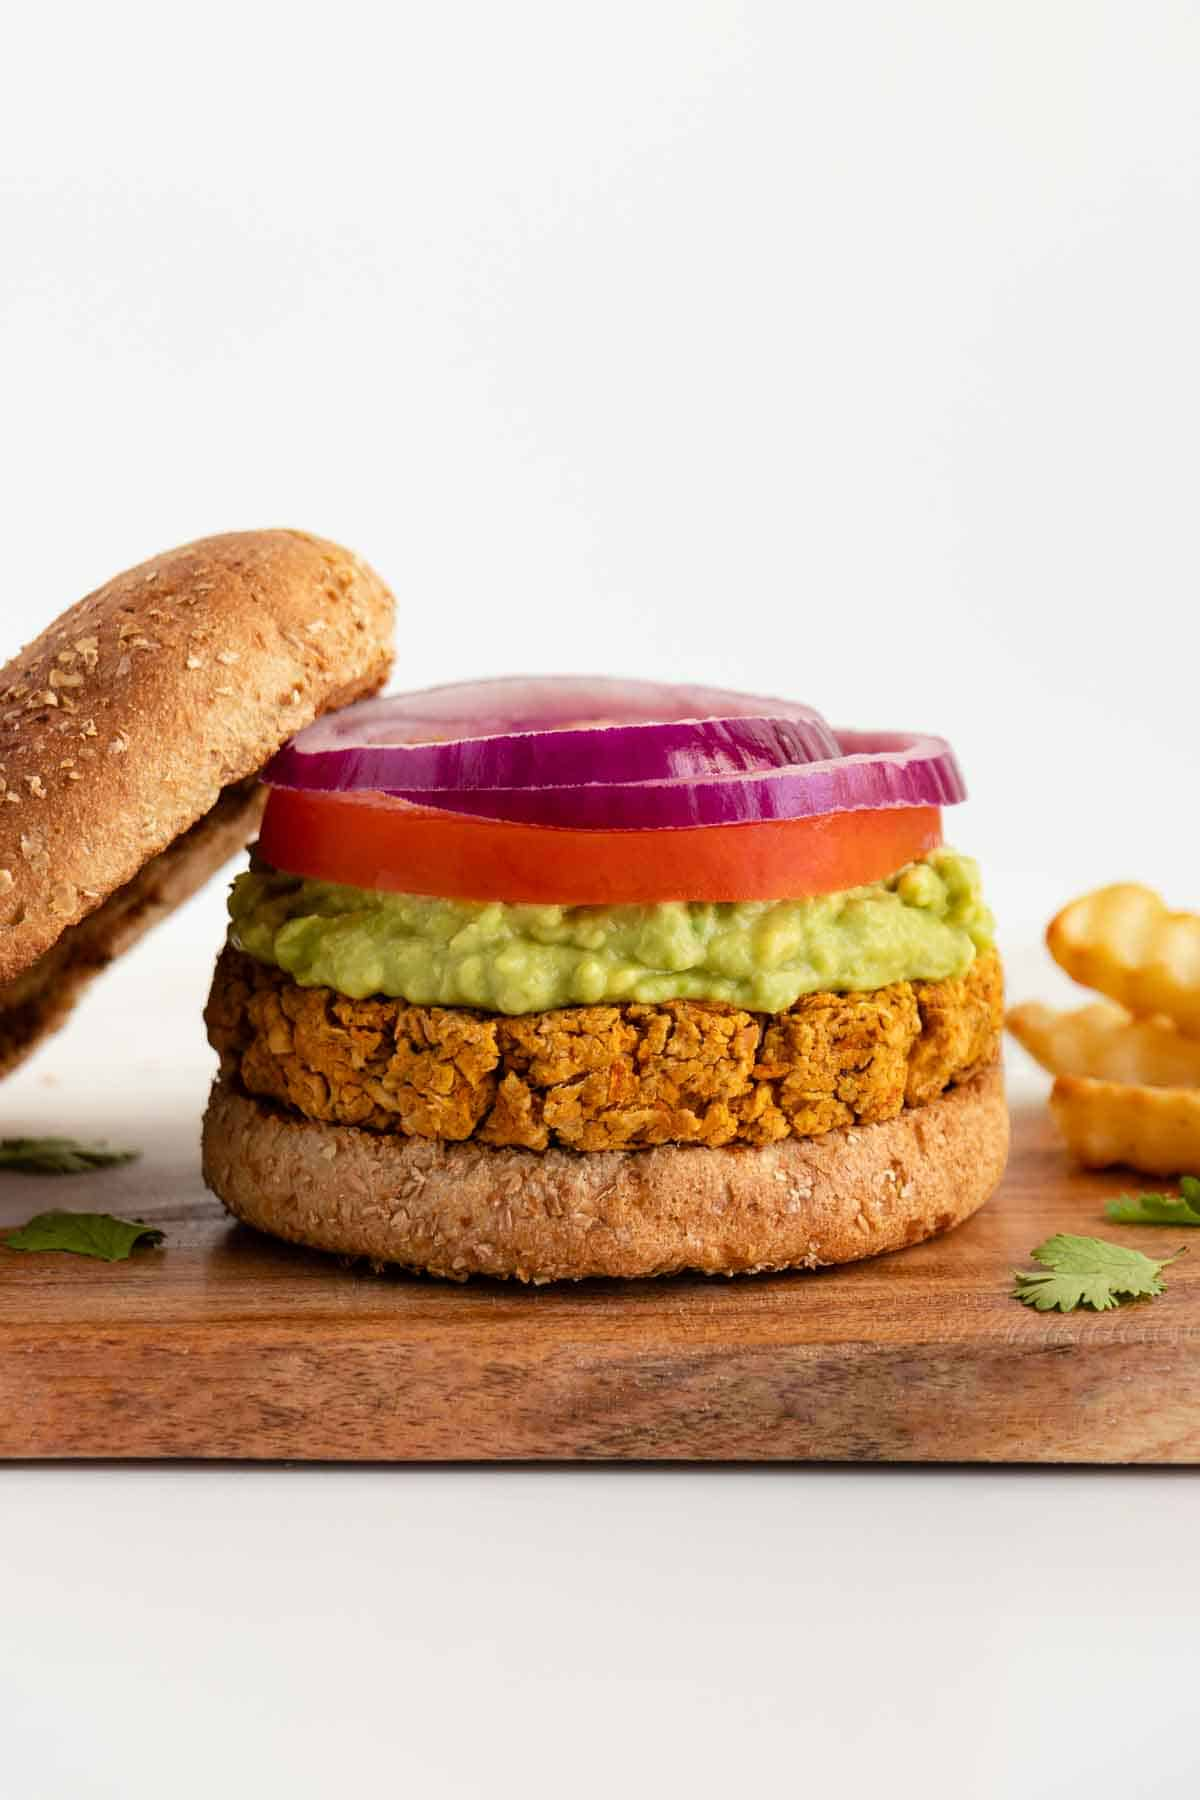 a vegan chickpea burger patty on a bun with mashed avocado, tomato, and sliced red onion